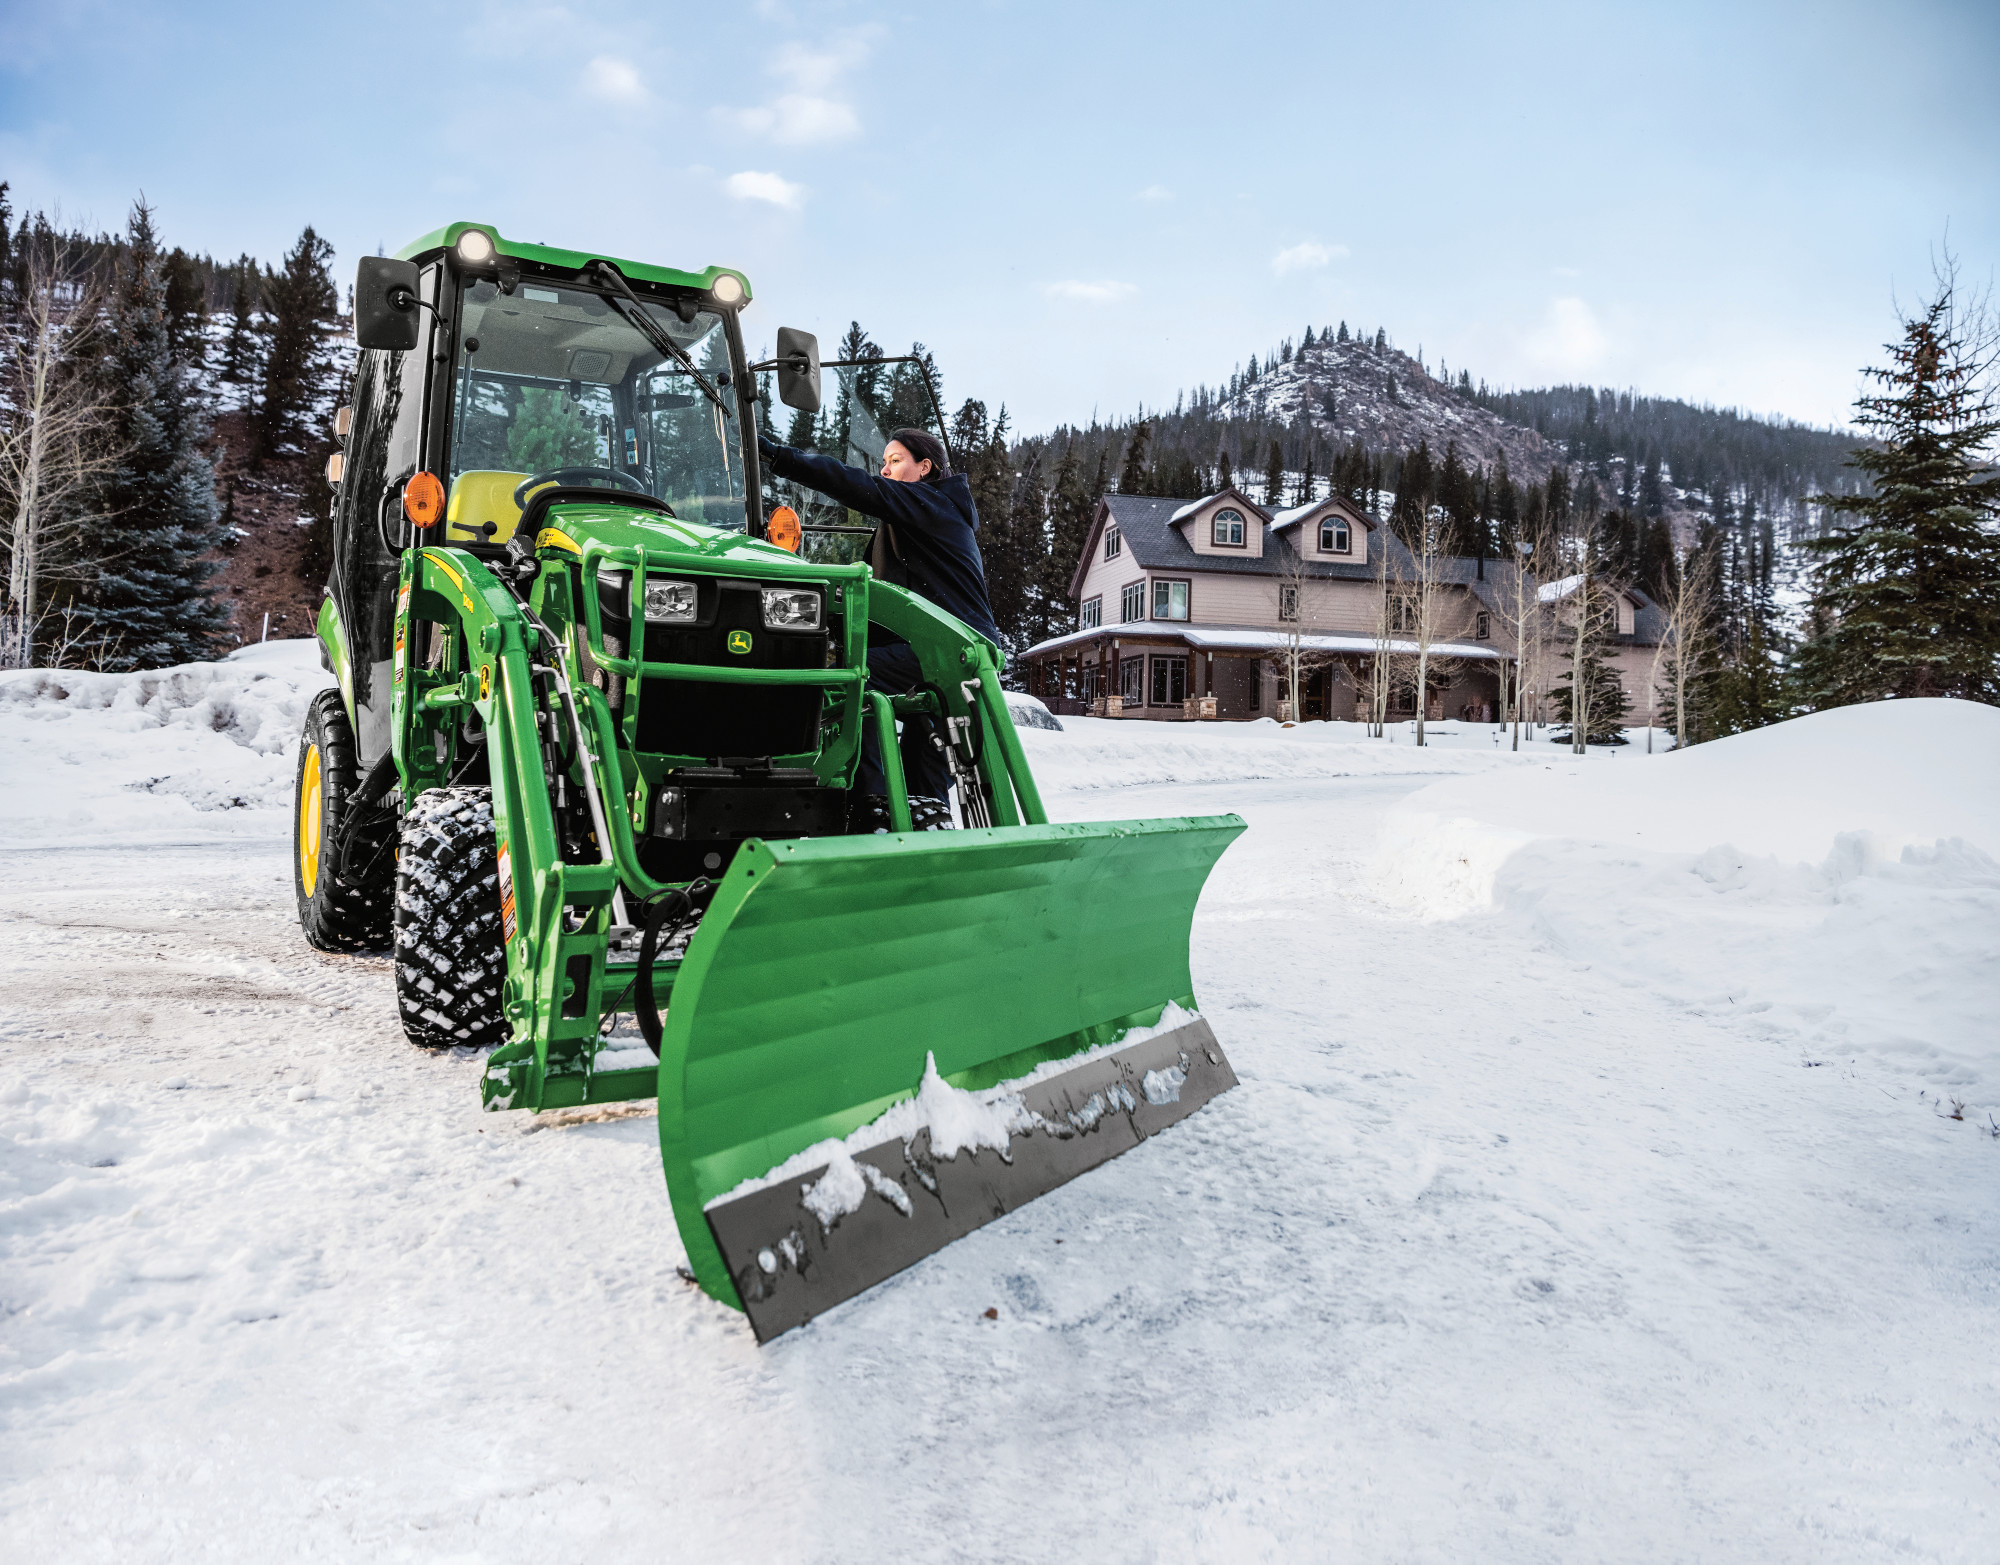 John Deere 1025R with cab and Frontier front blade